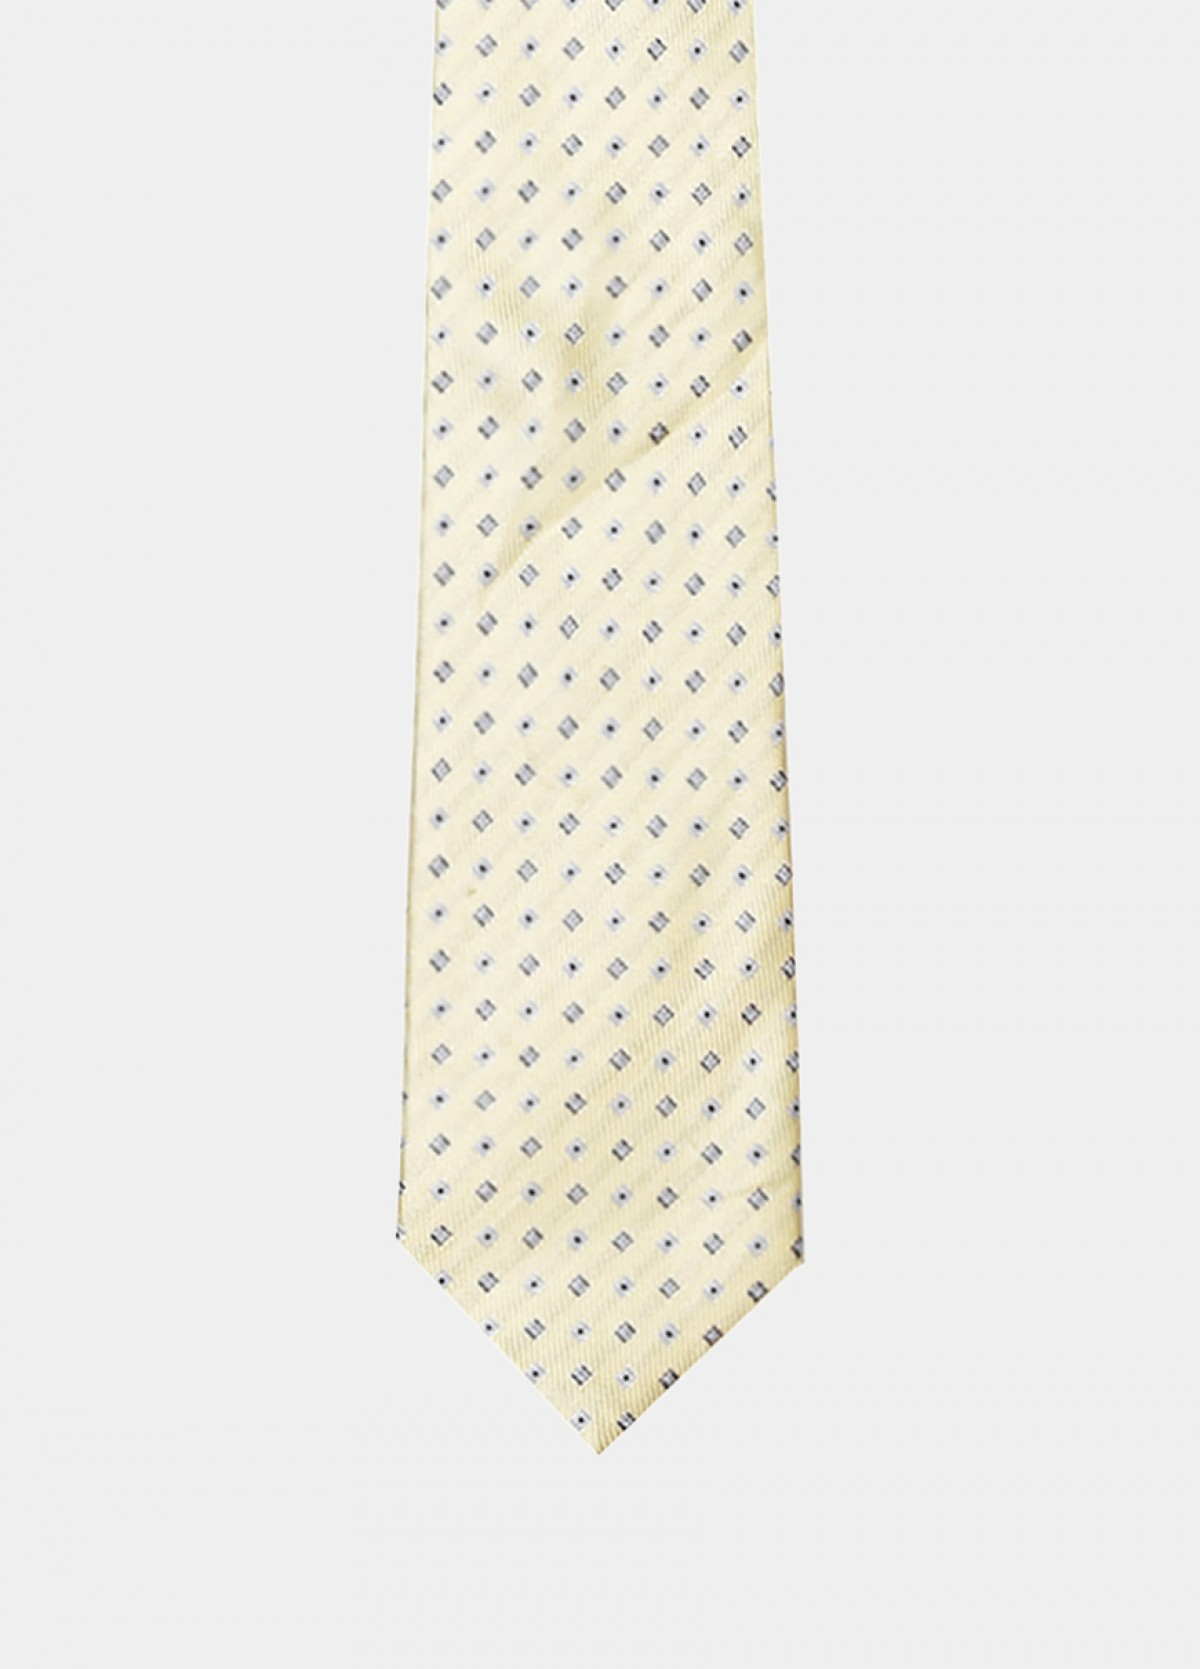 The Blue Navy Stain Resistant Tie